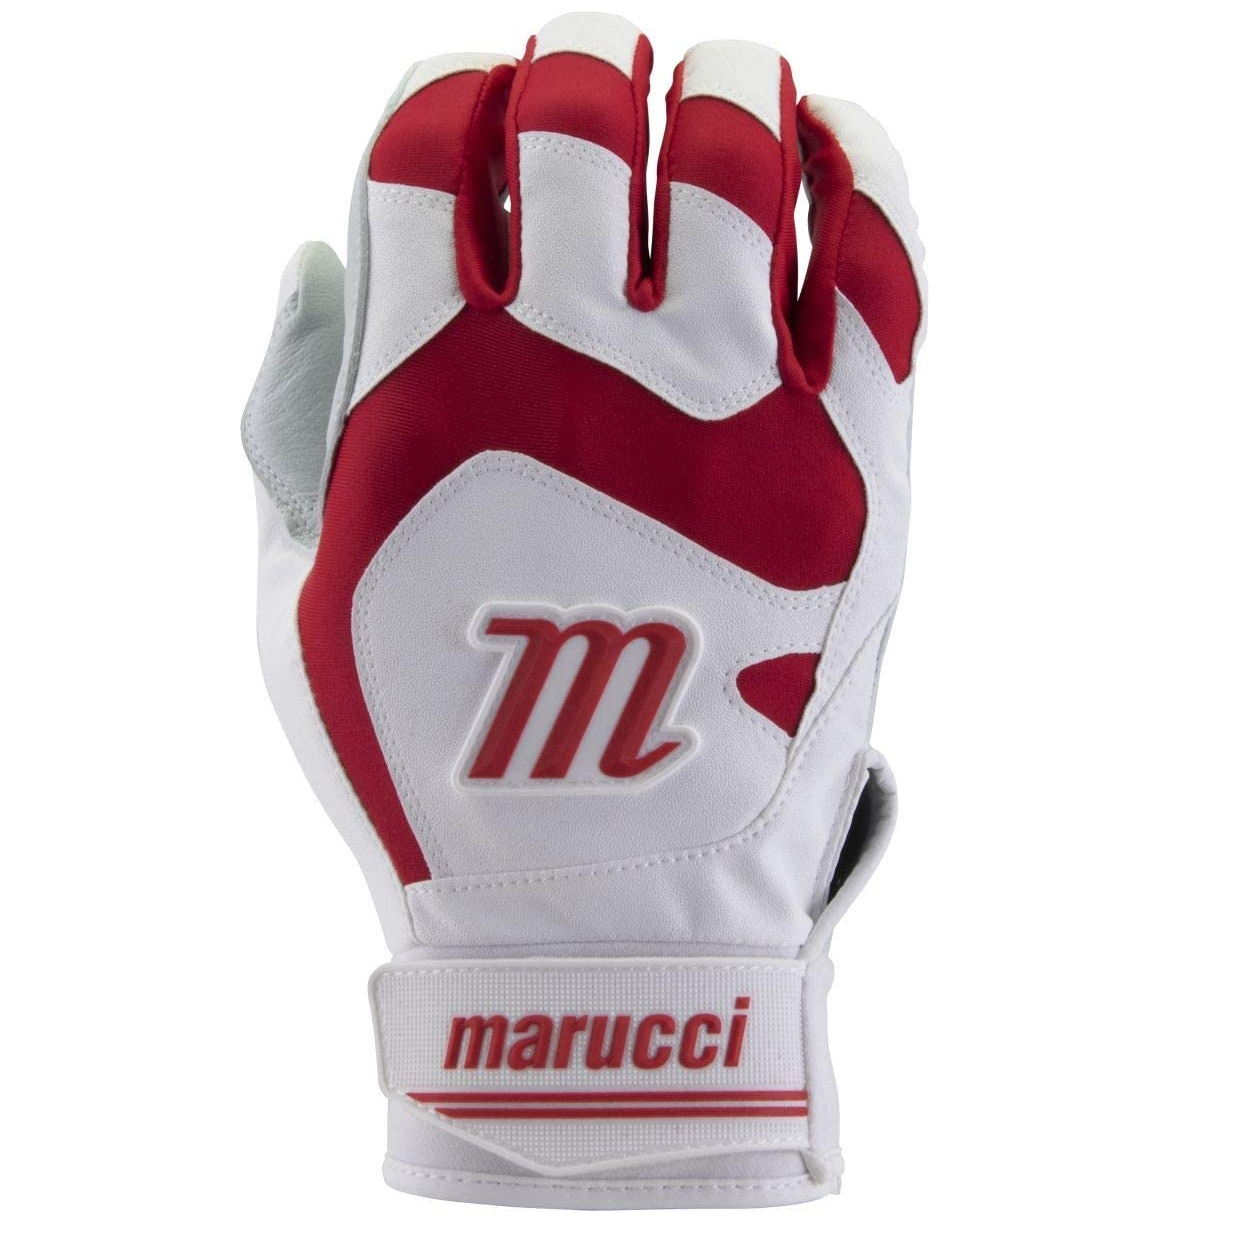 marucci-signature-youth-batting-gloves-red-youth-small MBGSGN2Y-RW-YS Marucci  Digitally embossed perforated Cabretta sheepskin palm provides maximum grip and durability